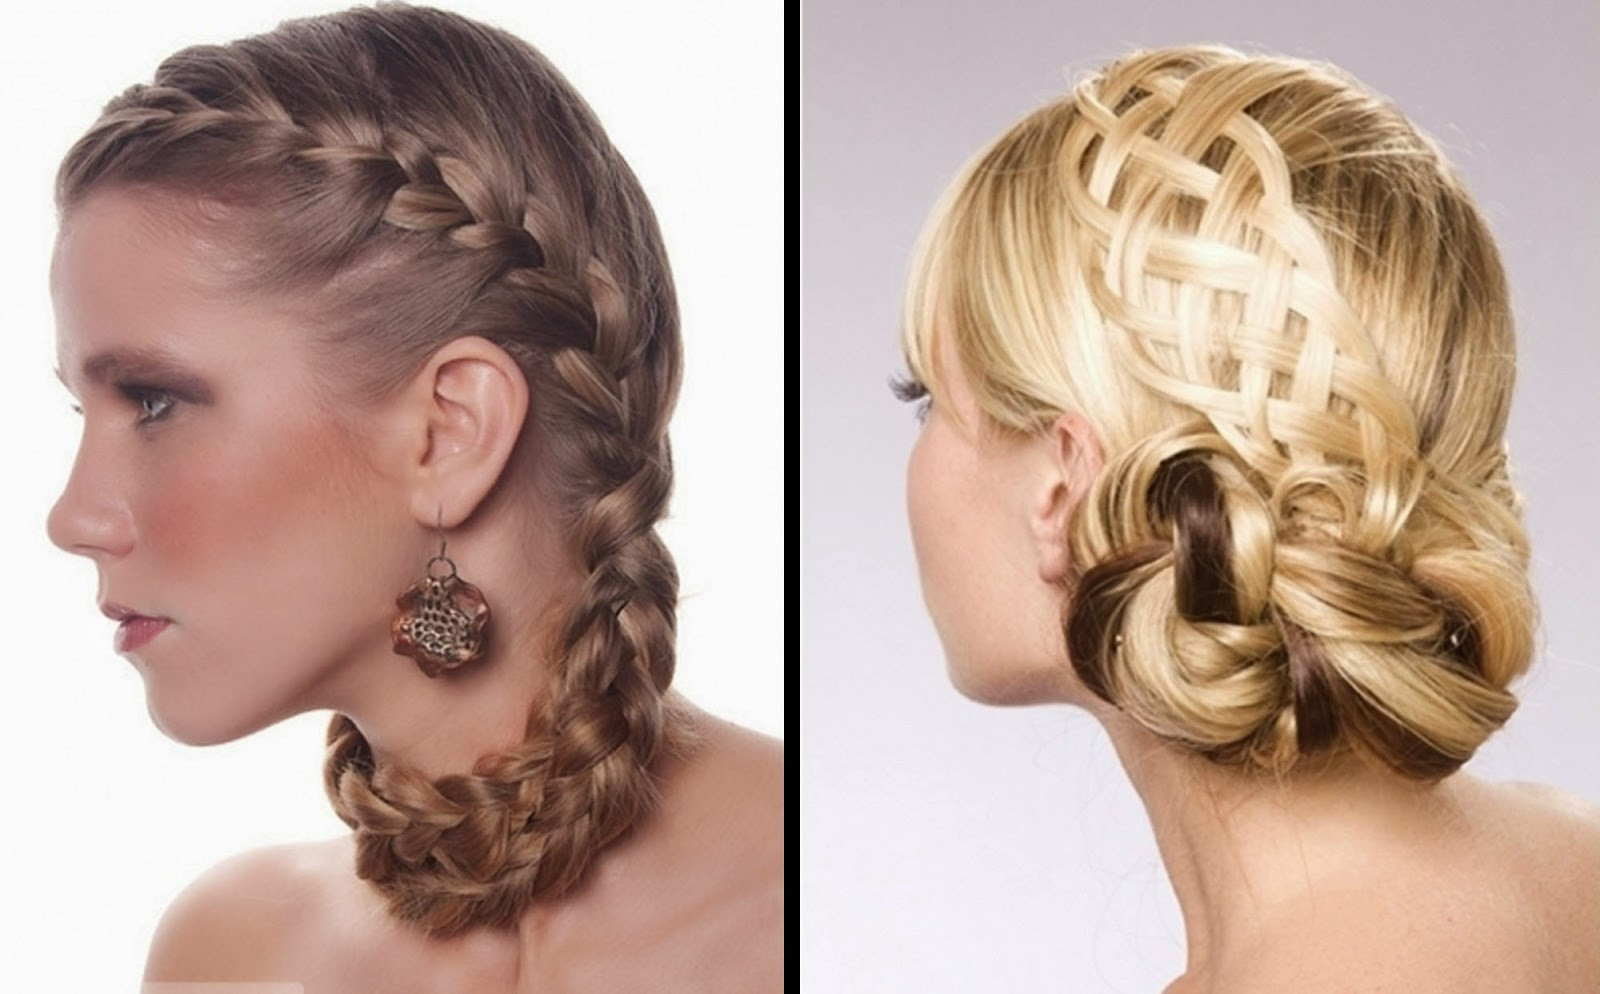 Hairstyles For Prom  100 Delightful Prom Hairstyles Ideas Haircuts